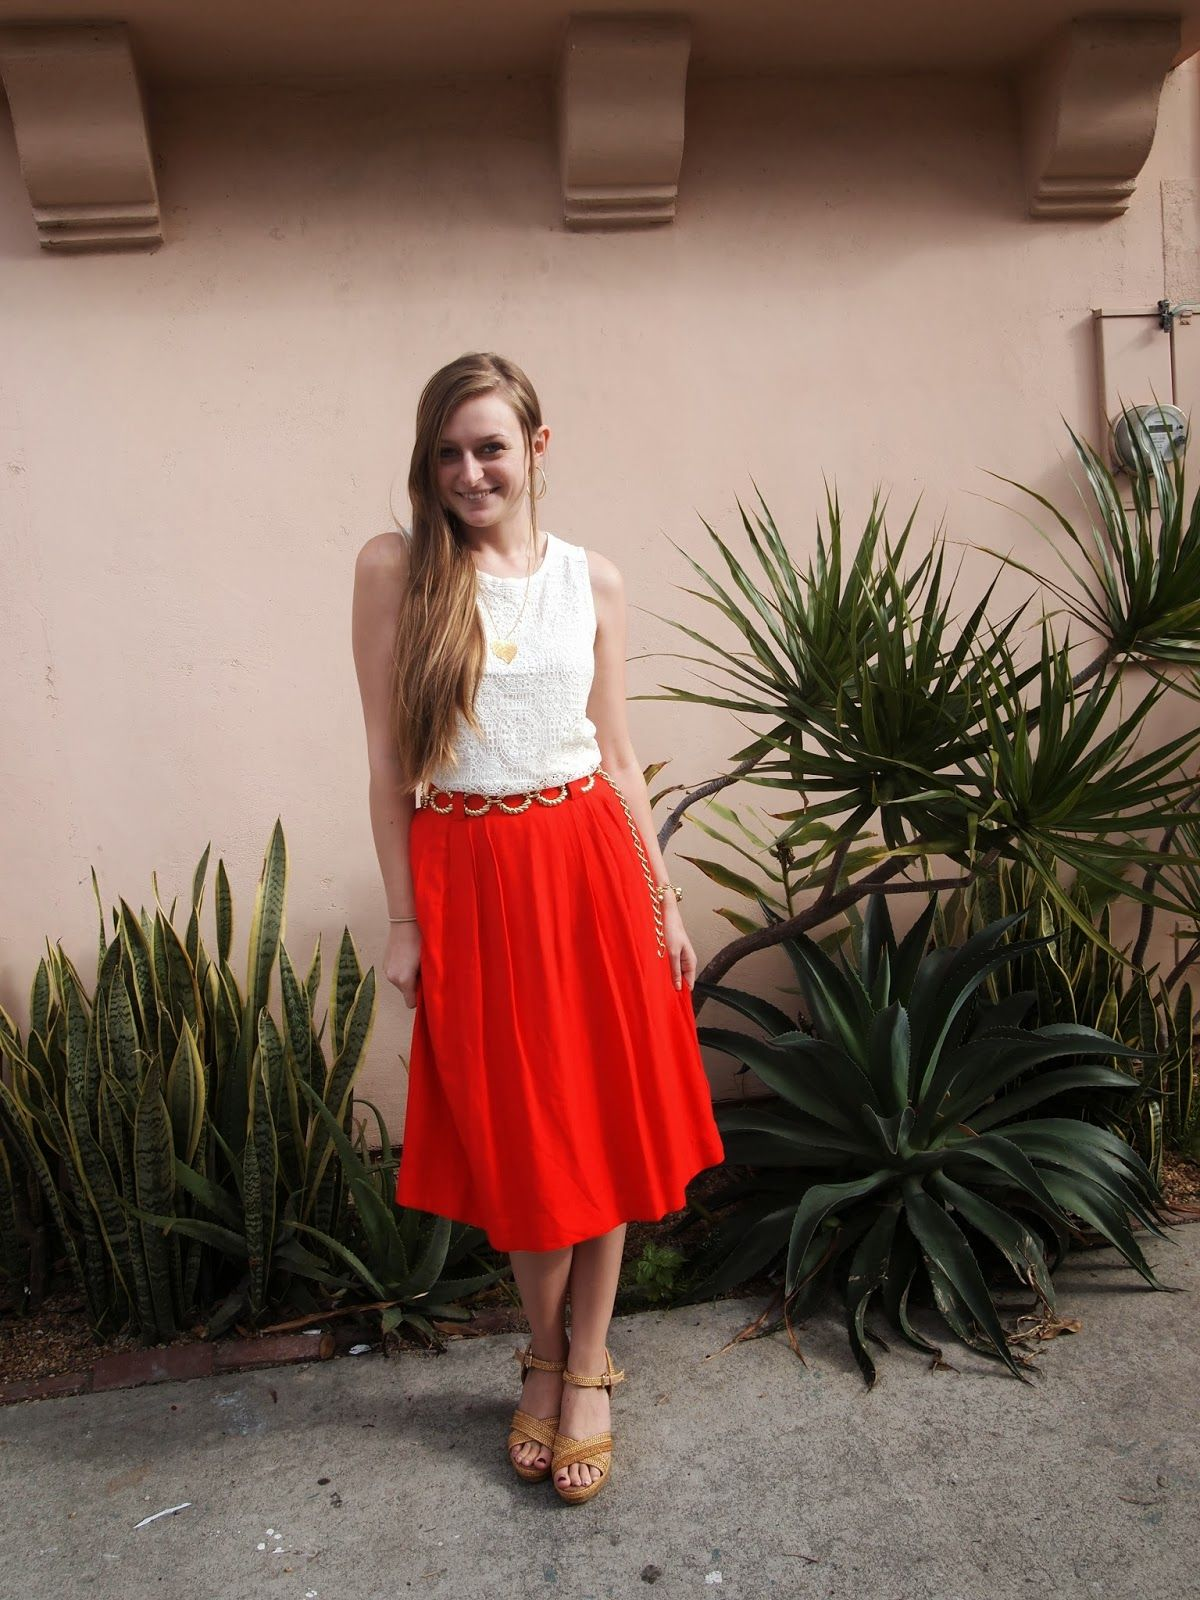 Lauren @ Exploring my Style | the perfect red skirt